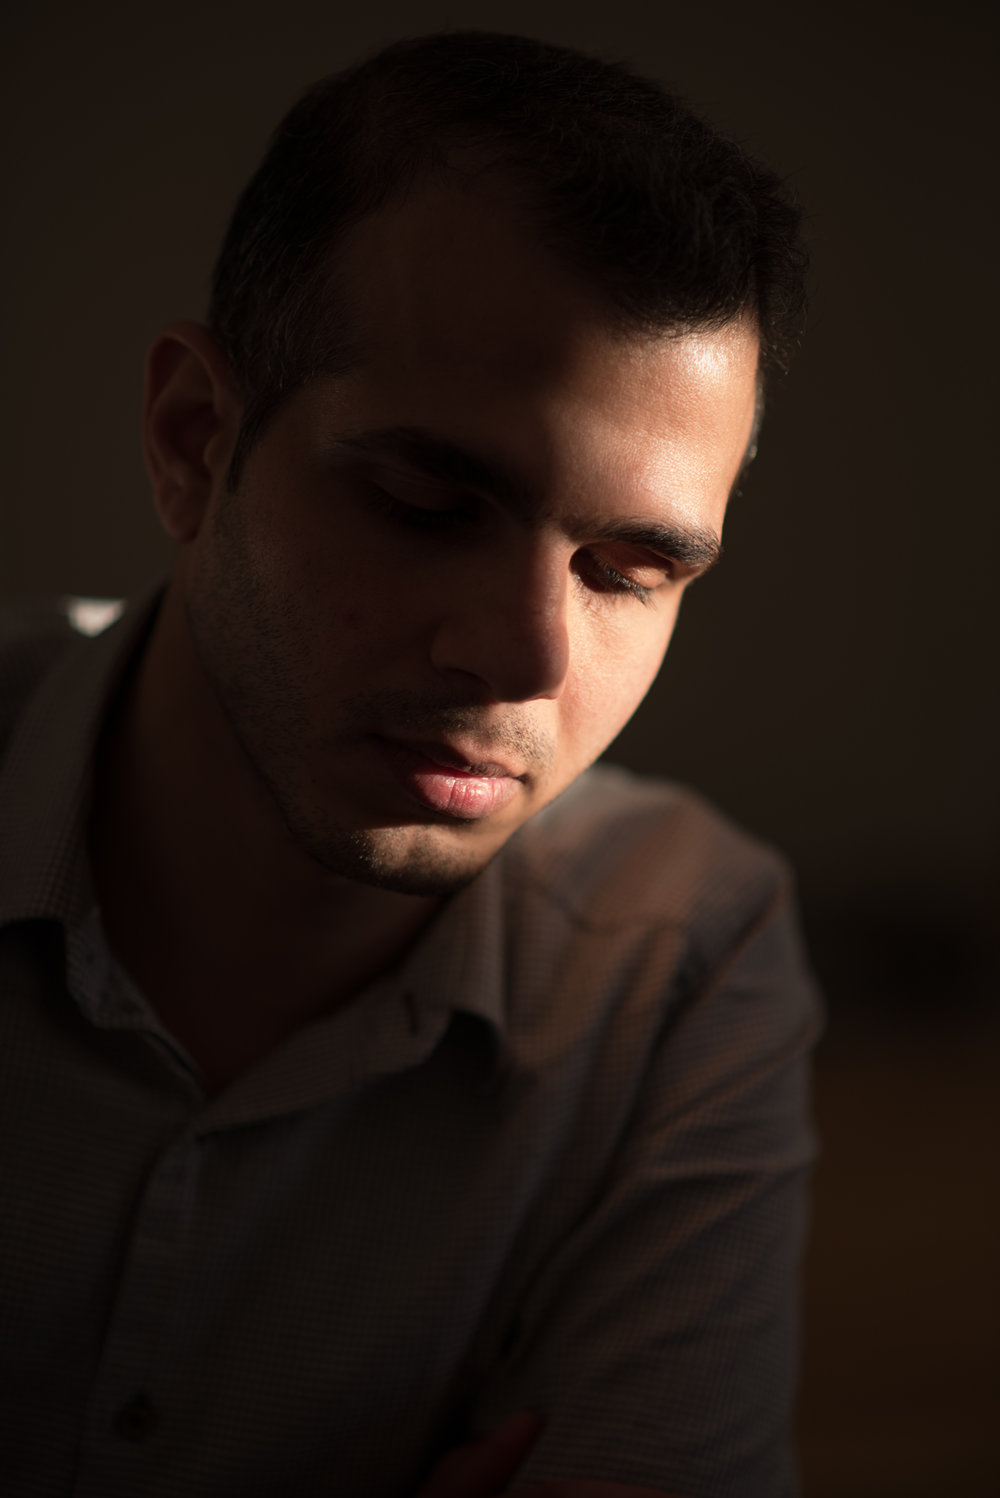 3/23/17 – Helsingborg, Sweden – Behoosh Kamaei, 30, of Iran, poses for a portrait at his apartment on Thursday, Mar. 23, 2017. Kamaei fled Iran for being gay, which is illegal there and can be punishable by death, following two separate arrests for the 'crime'. After a journey through Eastern Europe he's come to Sweden but is disappointed by the homophobic Muslim community here and as an atheist, himself, cannot understand why people cannot let others live their truths. (Photo by Nicholas Pfosi)This picture is part of a project that examines the experience of queer asylum seekers and refugees coming to Europe from homophobic countries from around the world. It aims to shed light on the added complexities caused by being LGBT while navigating a new culture and citizenship status.